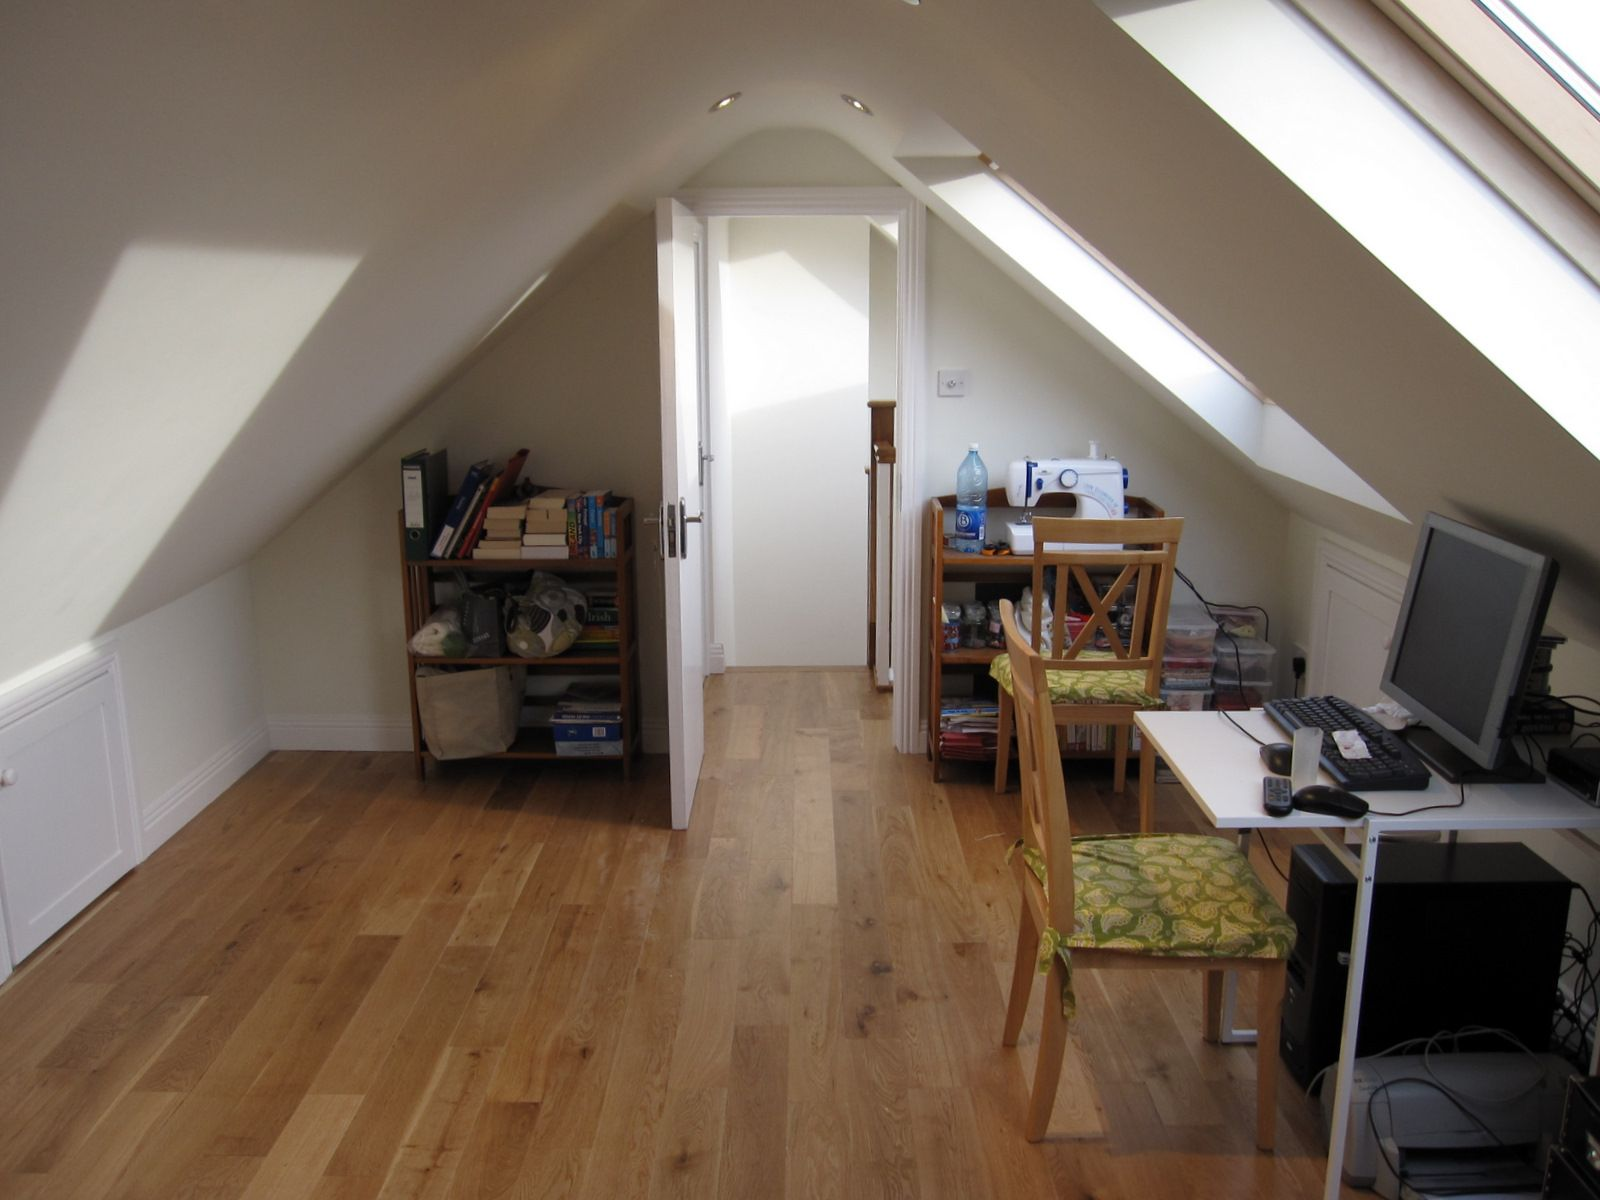 Our Services Attic conversion before and after, Attic